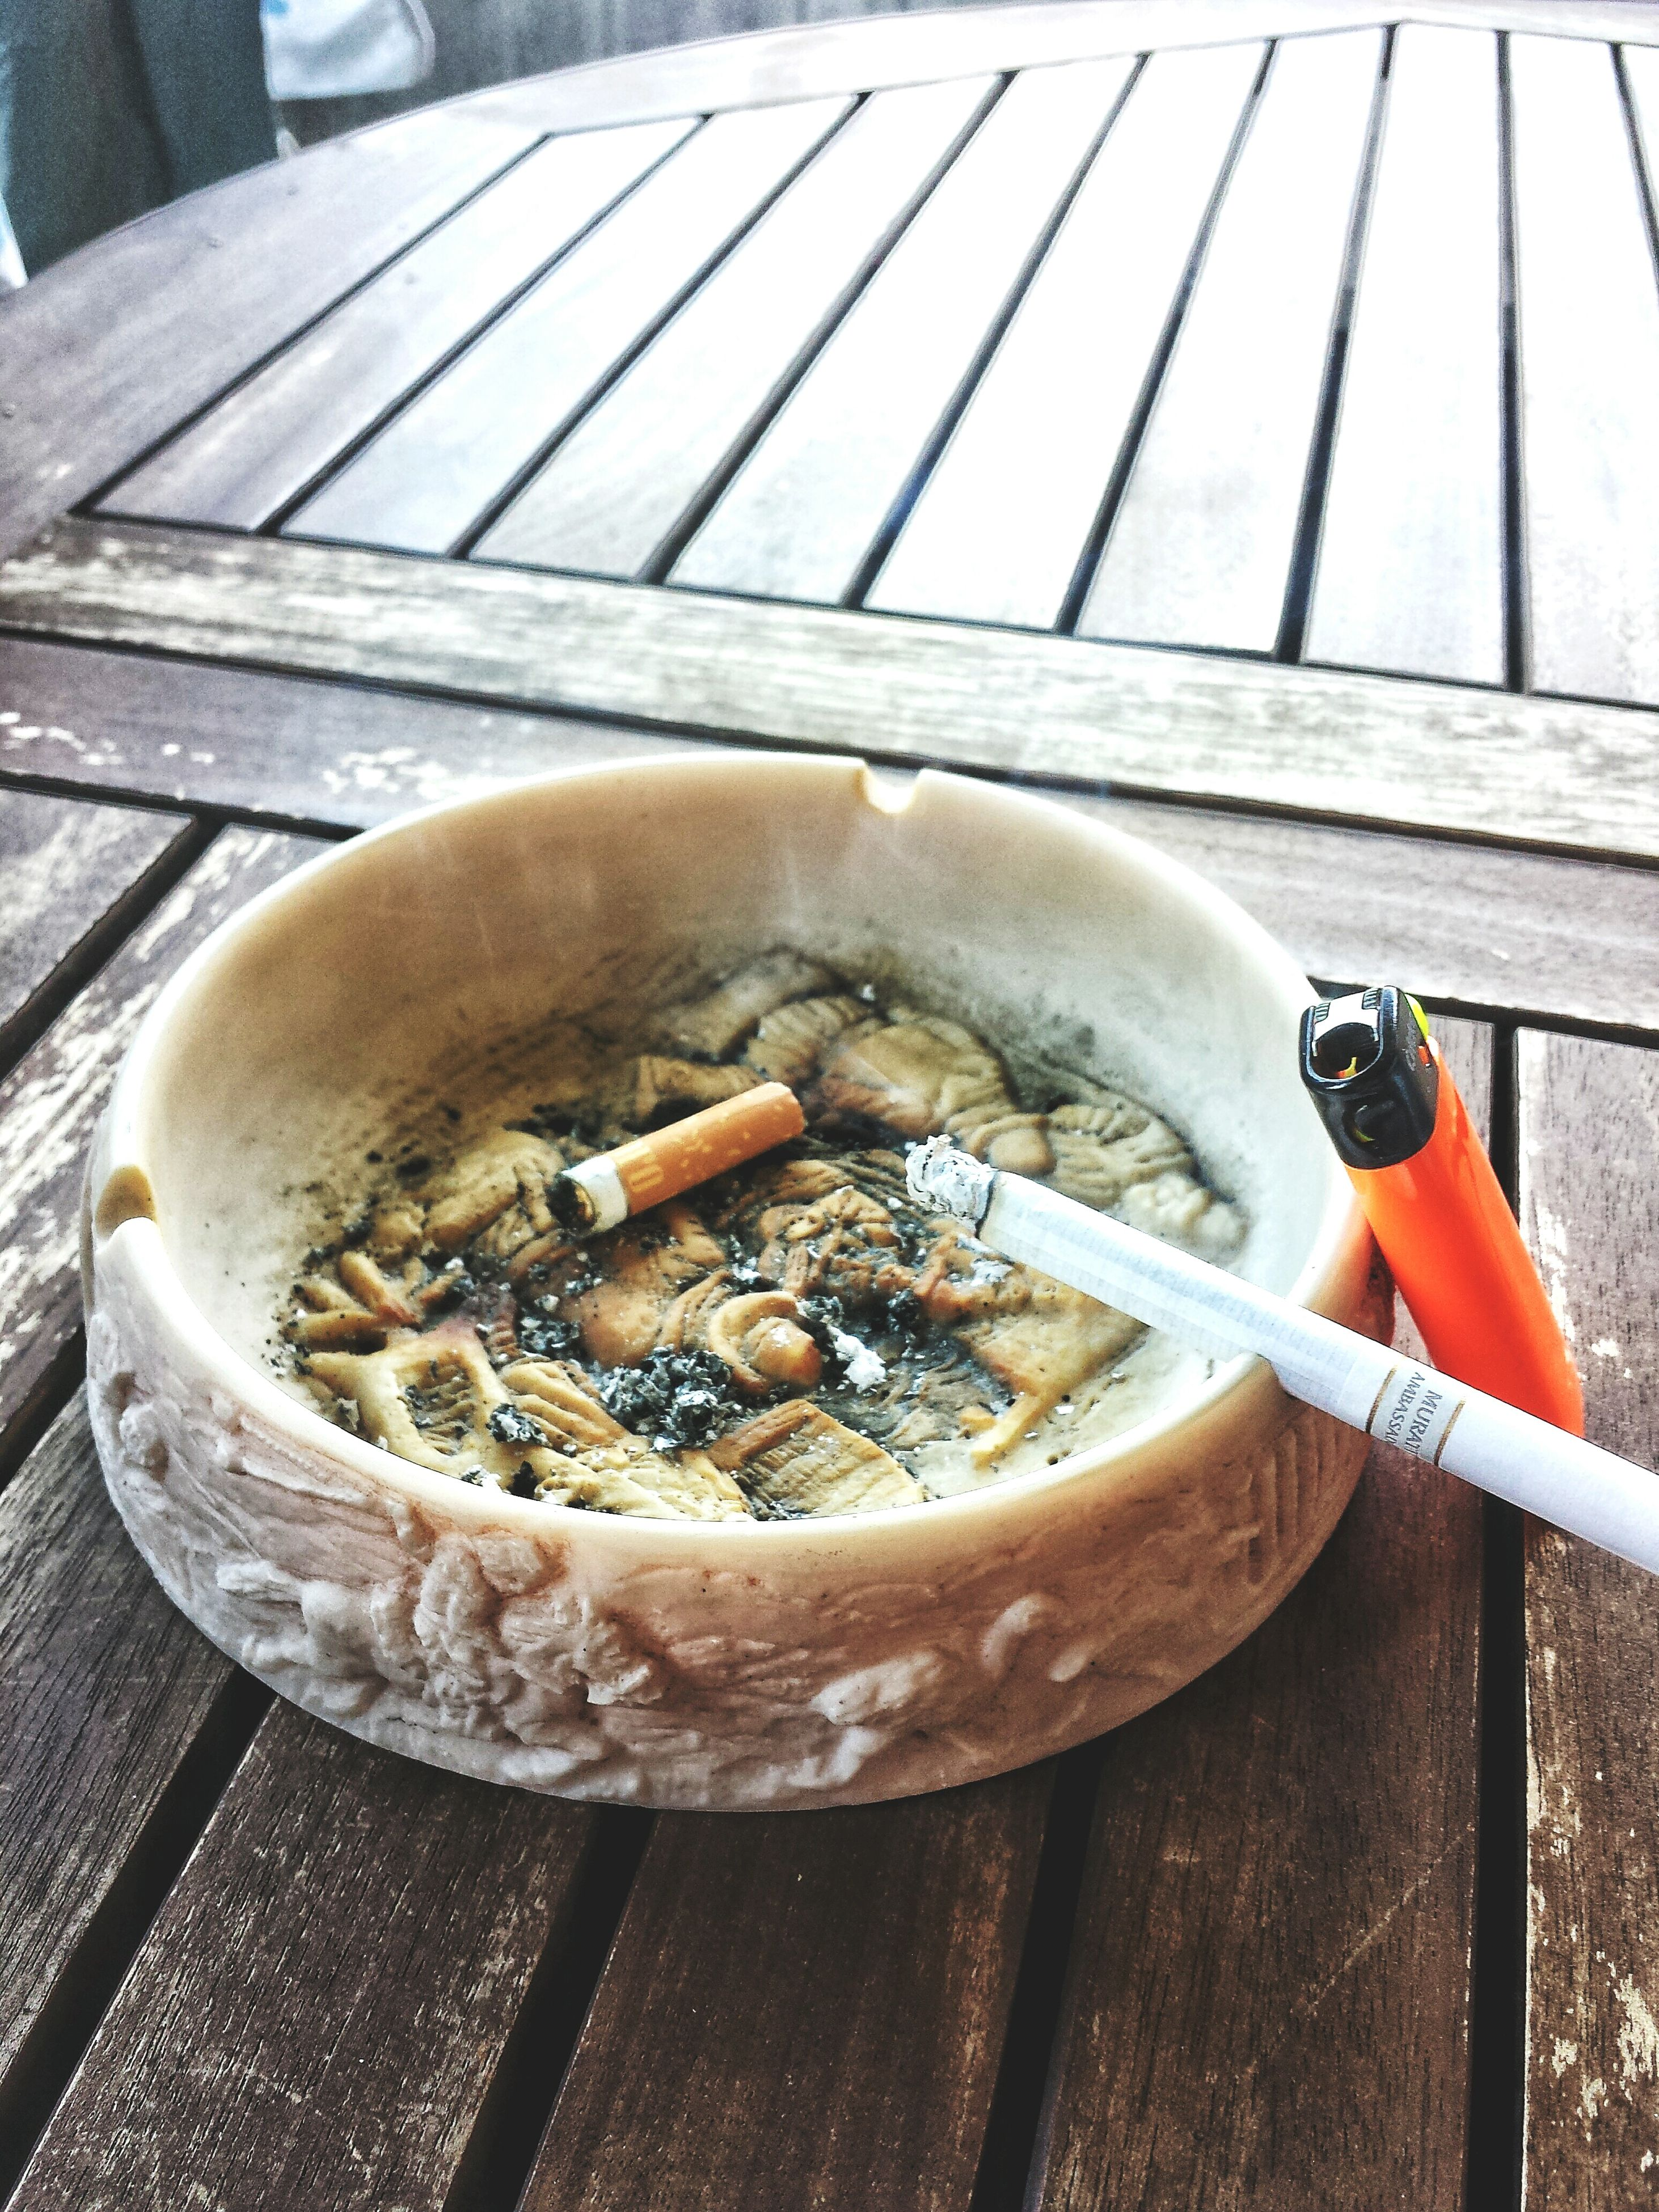 food and drink, food, freshness, high angle view, healthy eating, still life, close-up, table, spoon, bowl, wood - material, container, no people, preparation, indoors, day, metal, seafood, cooking